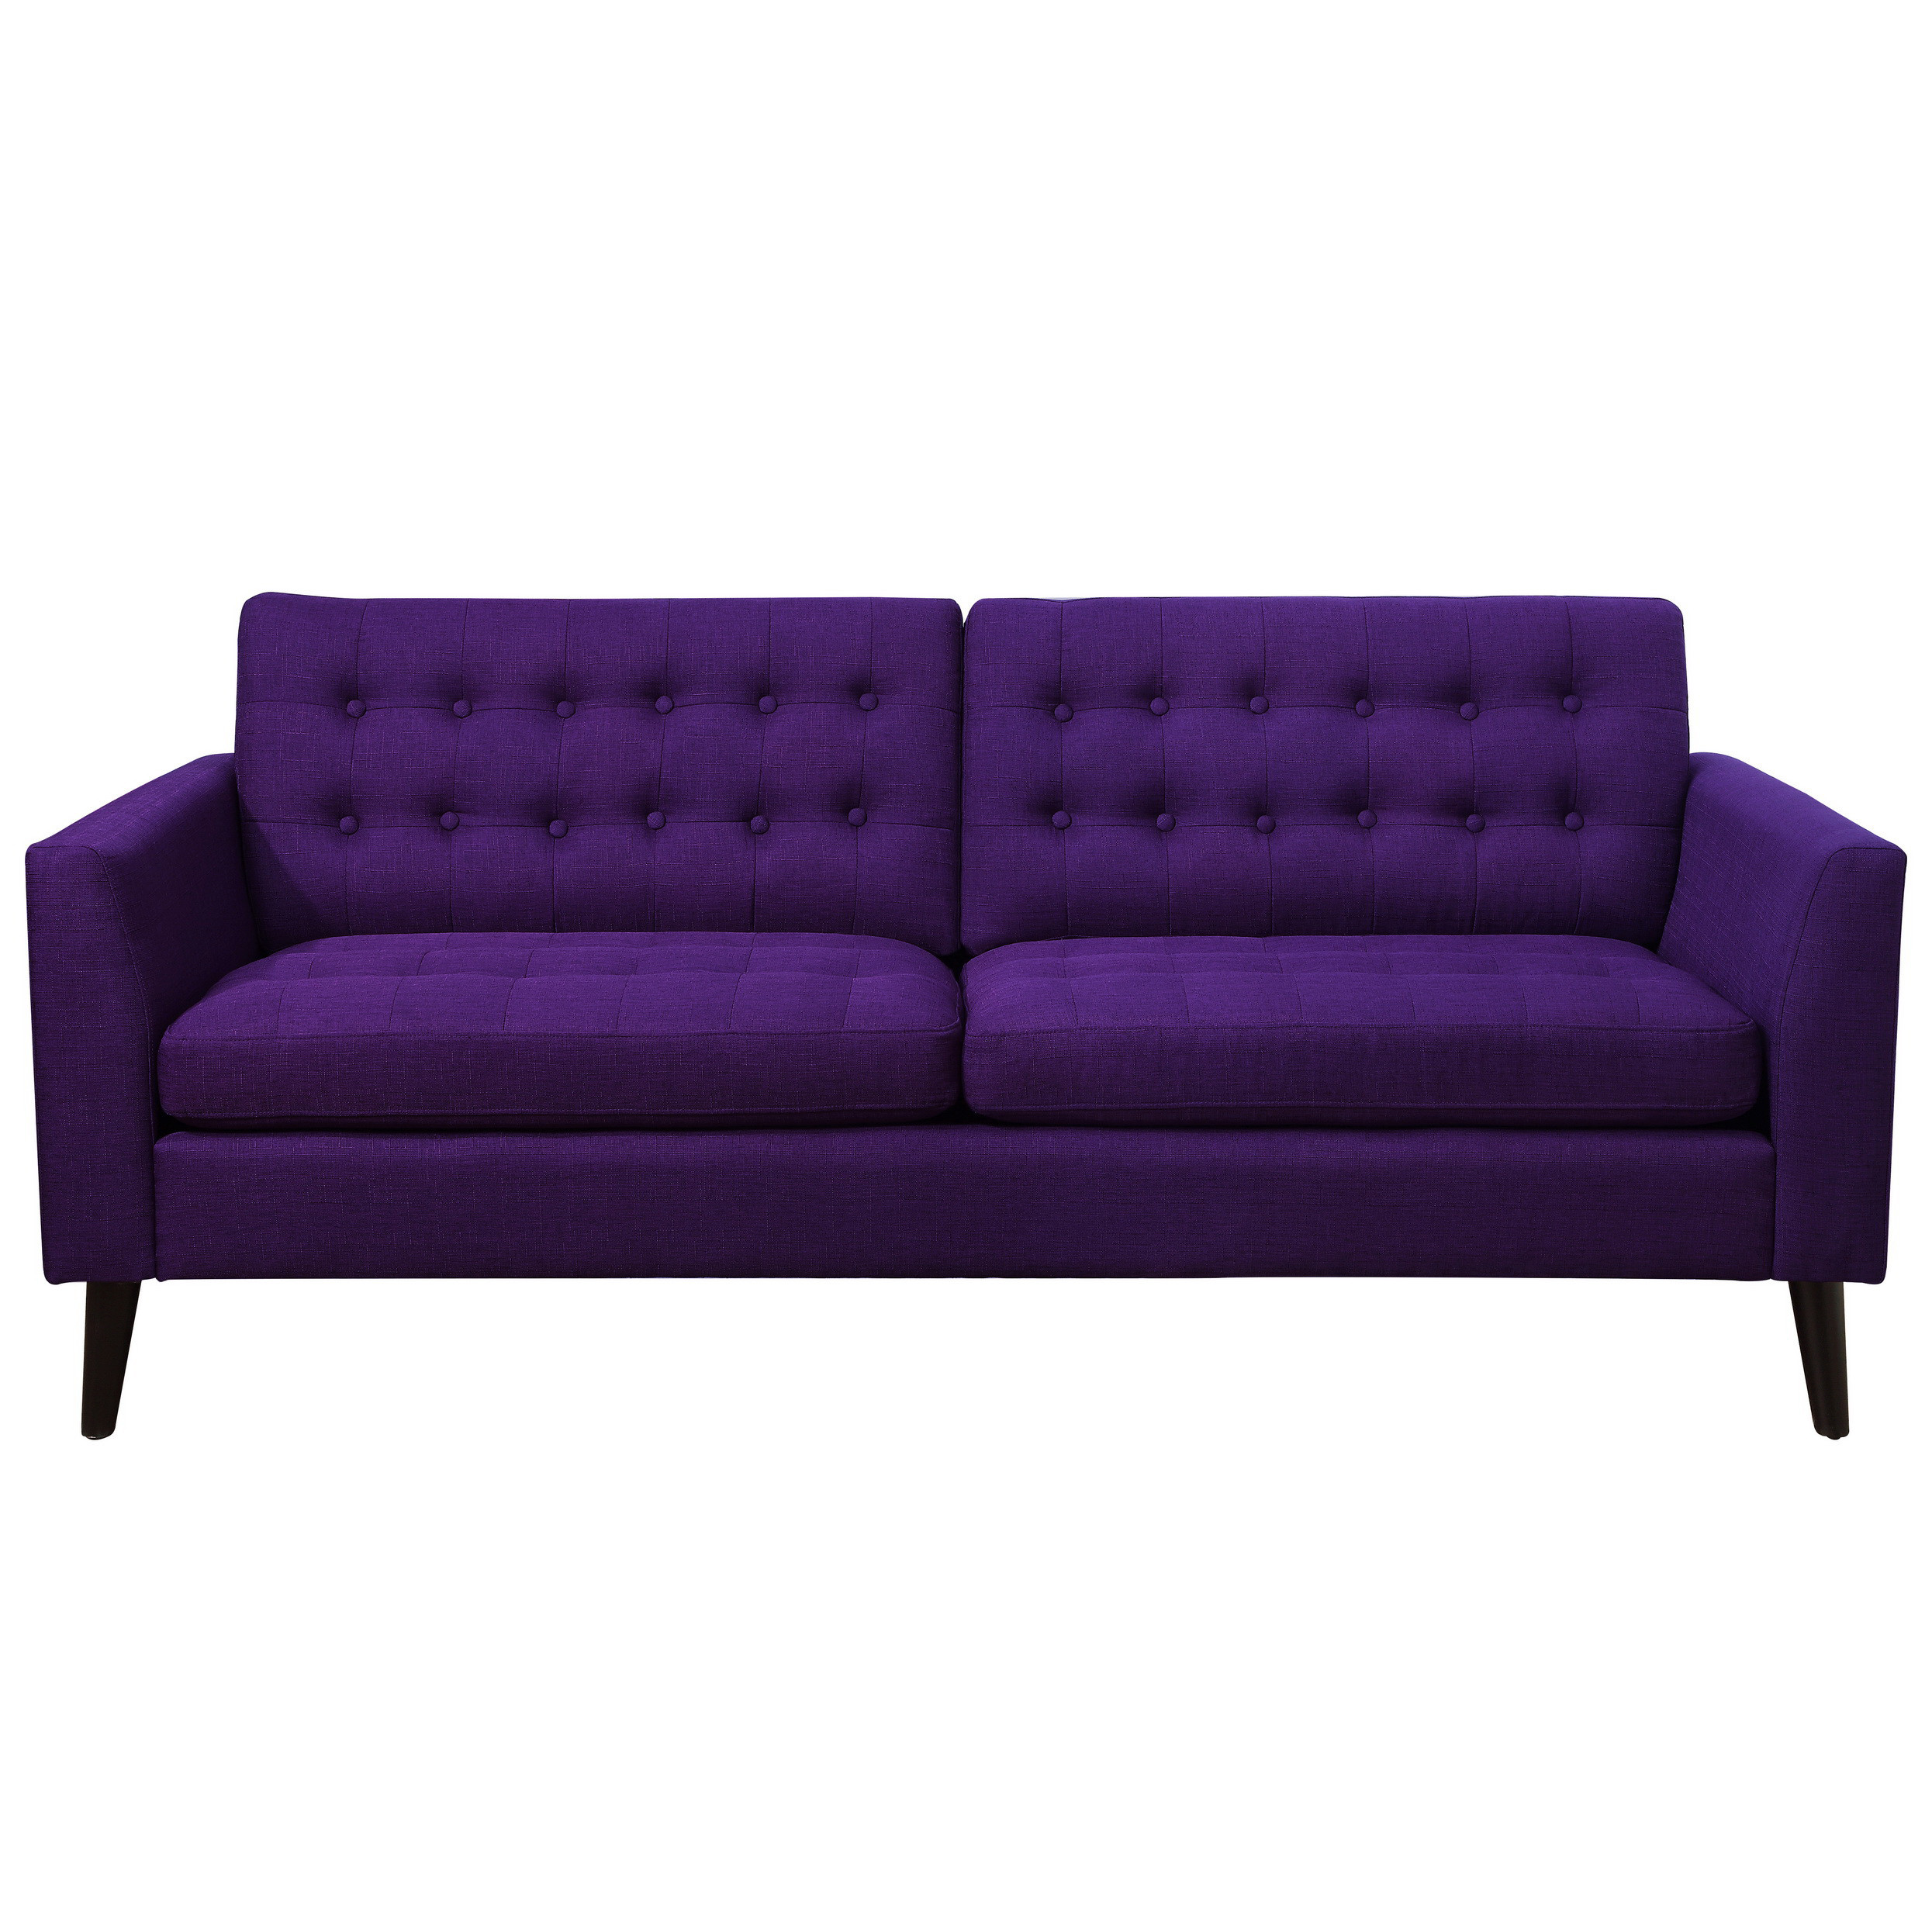 Warm Purple Sofa to Complete Your Living Room Decor: Aubergine And Grey Living Room | Eggplant Colored Sofa | Purple Sofa